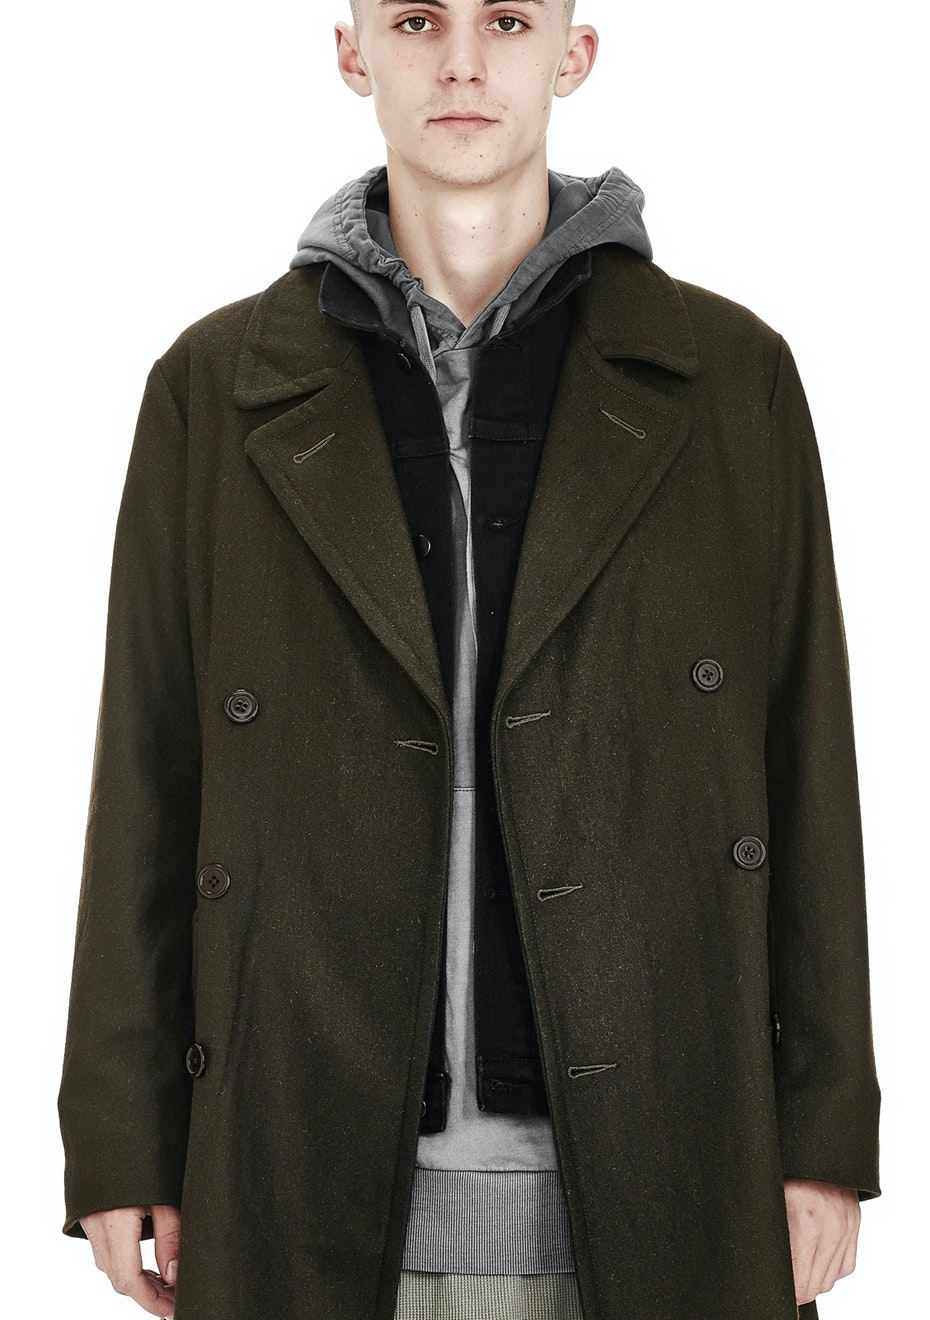 Commoners - MENS DOUBLE BREASTED COAT - MILITARY GREEN